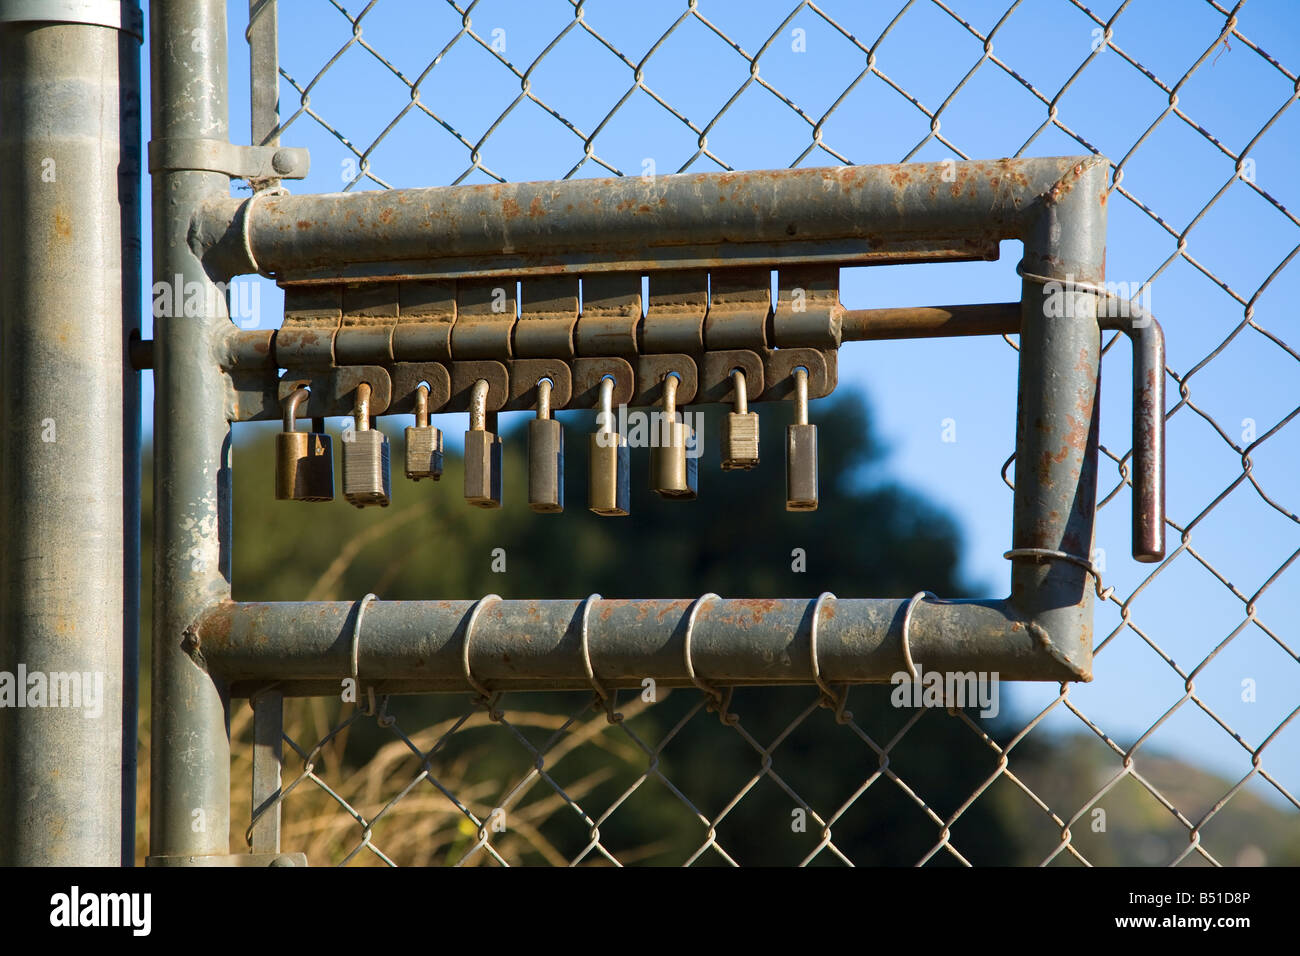 A true lock down concept, 9 pad locks make this gate to a restricted area a very secure barrier Stock Photo